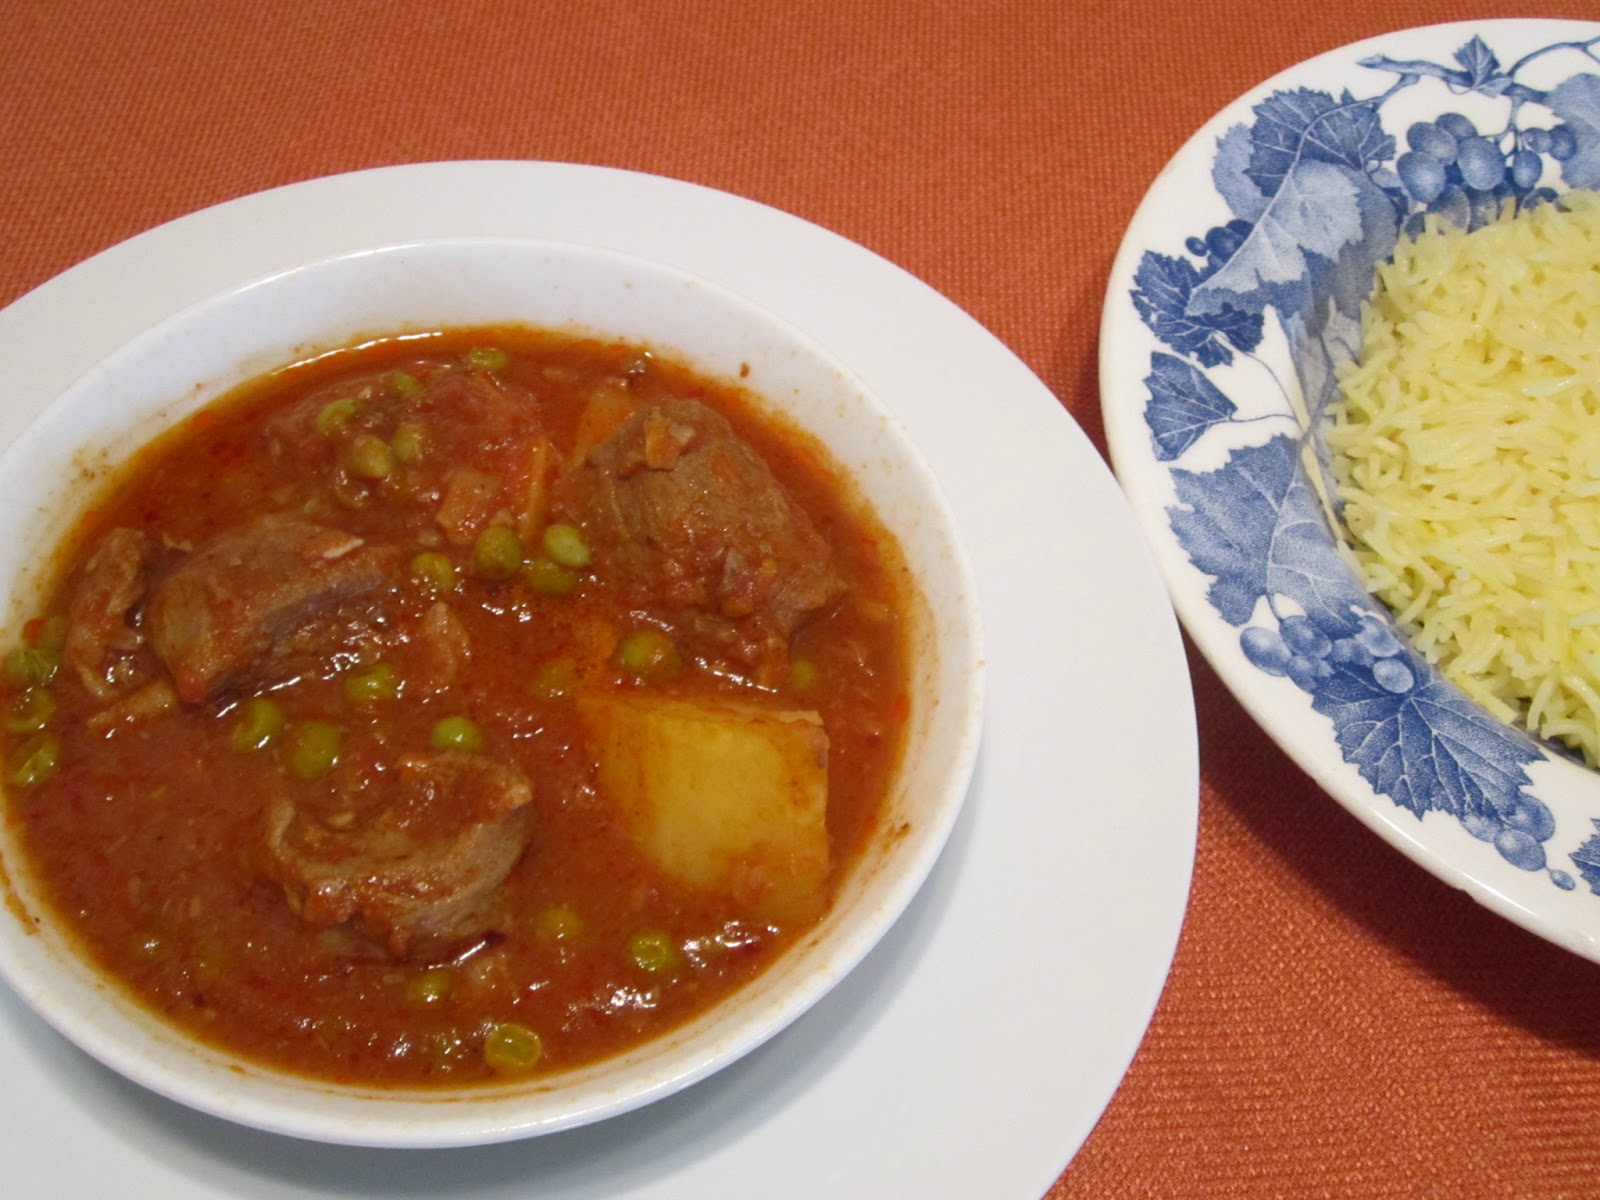 The iraqi family cookbook lamb stew with potatoes and peas lamb stew with potatoes and peas forumfinder Images